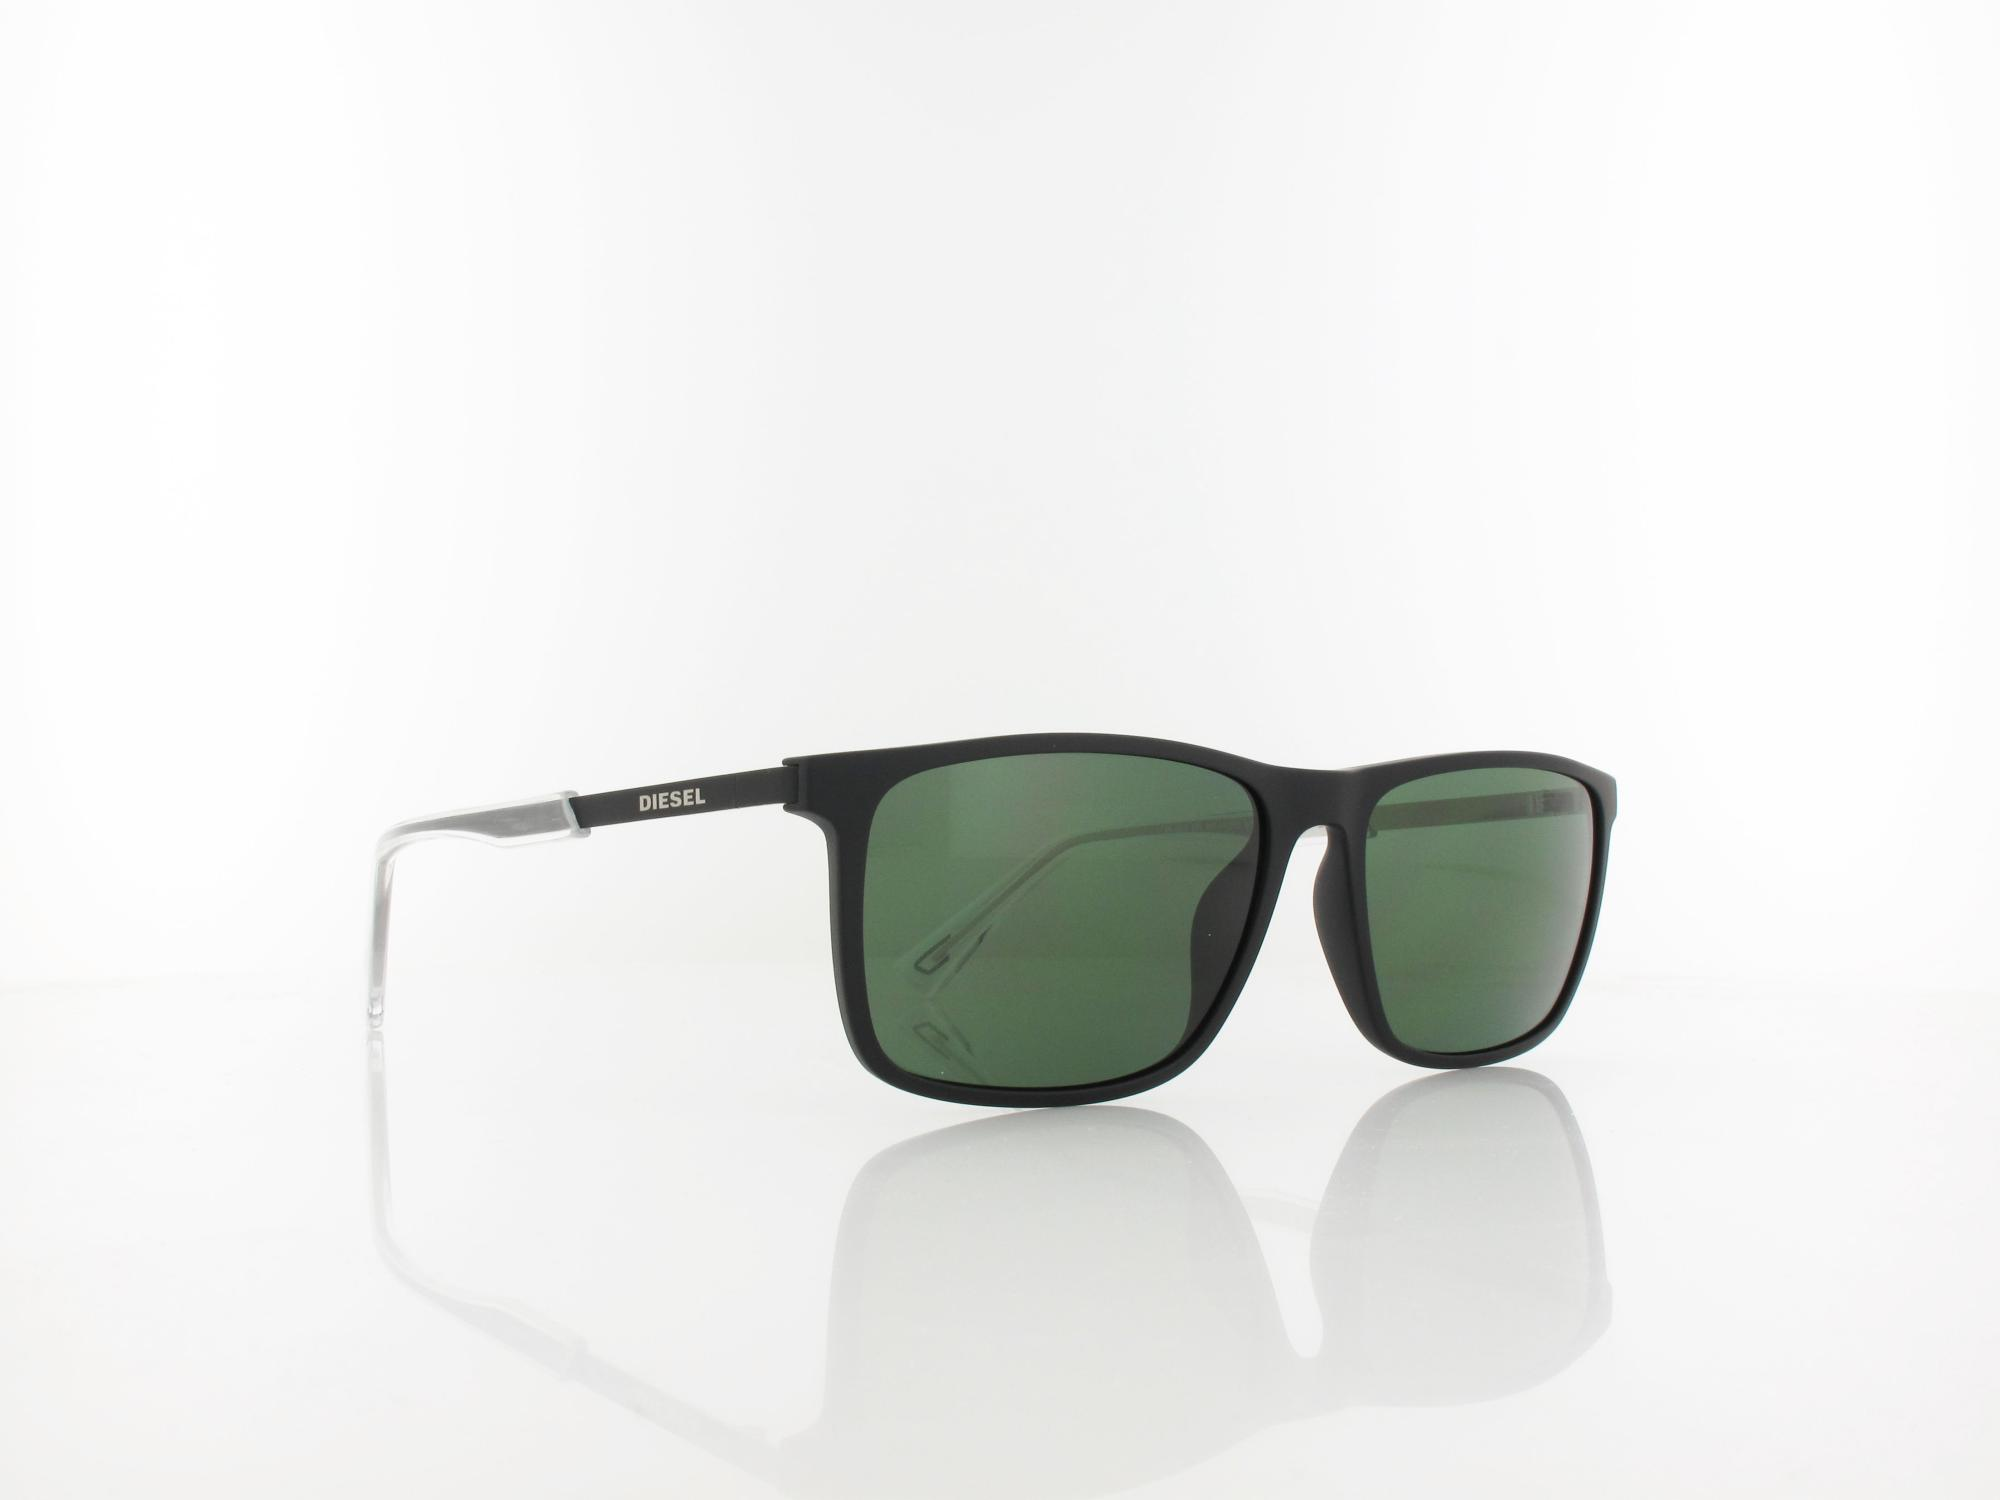 Diesel | DL0312/S 02R 57 | black matte / green polarized